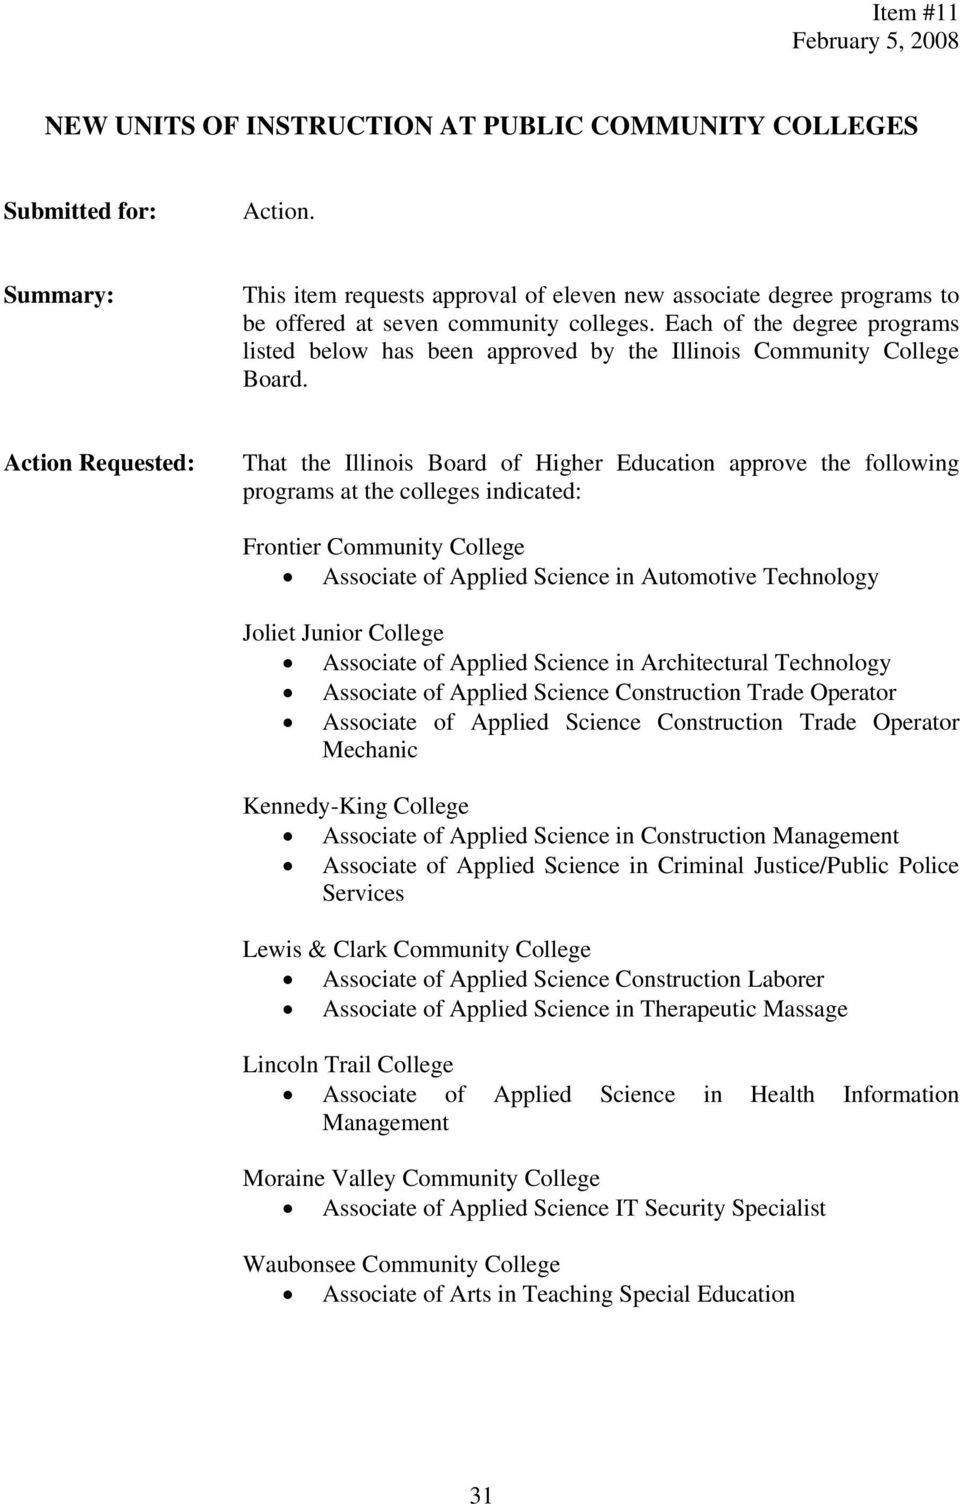 Each of the degree programs listed below has been approved by the Illinois Community College Board.